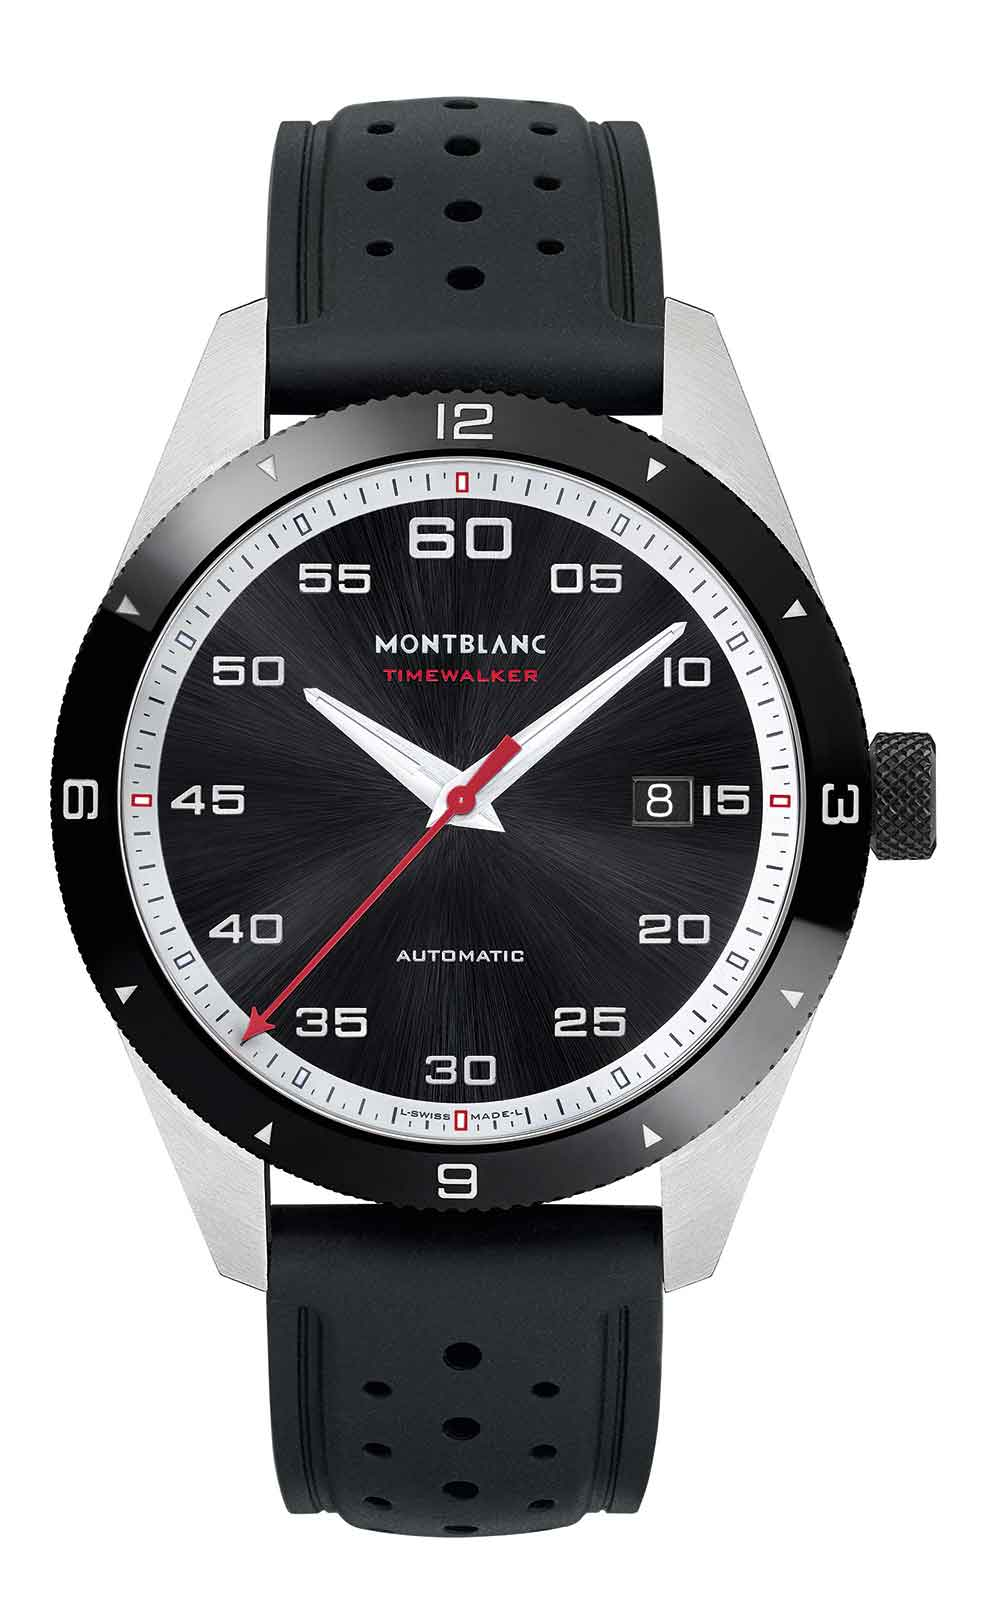 Montblanc TimeWalker Automatic Date